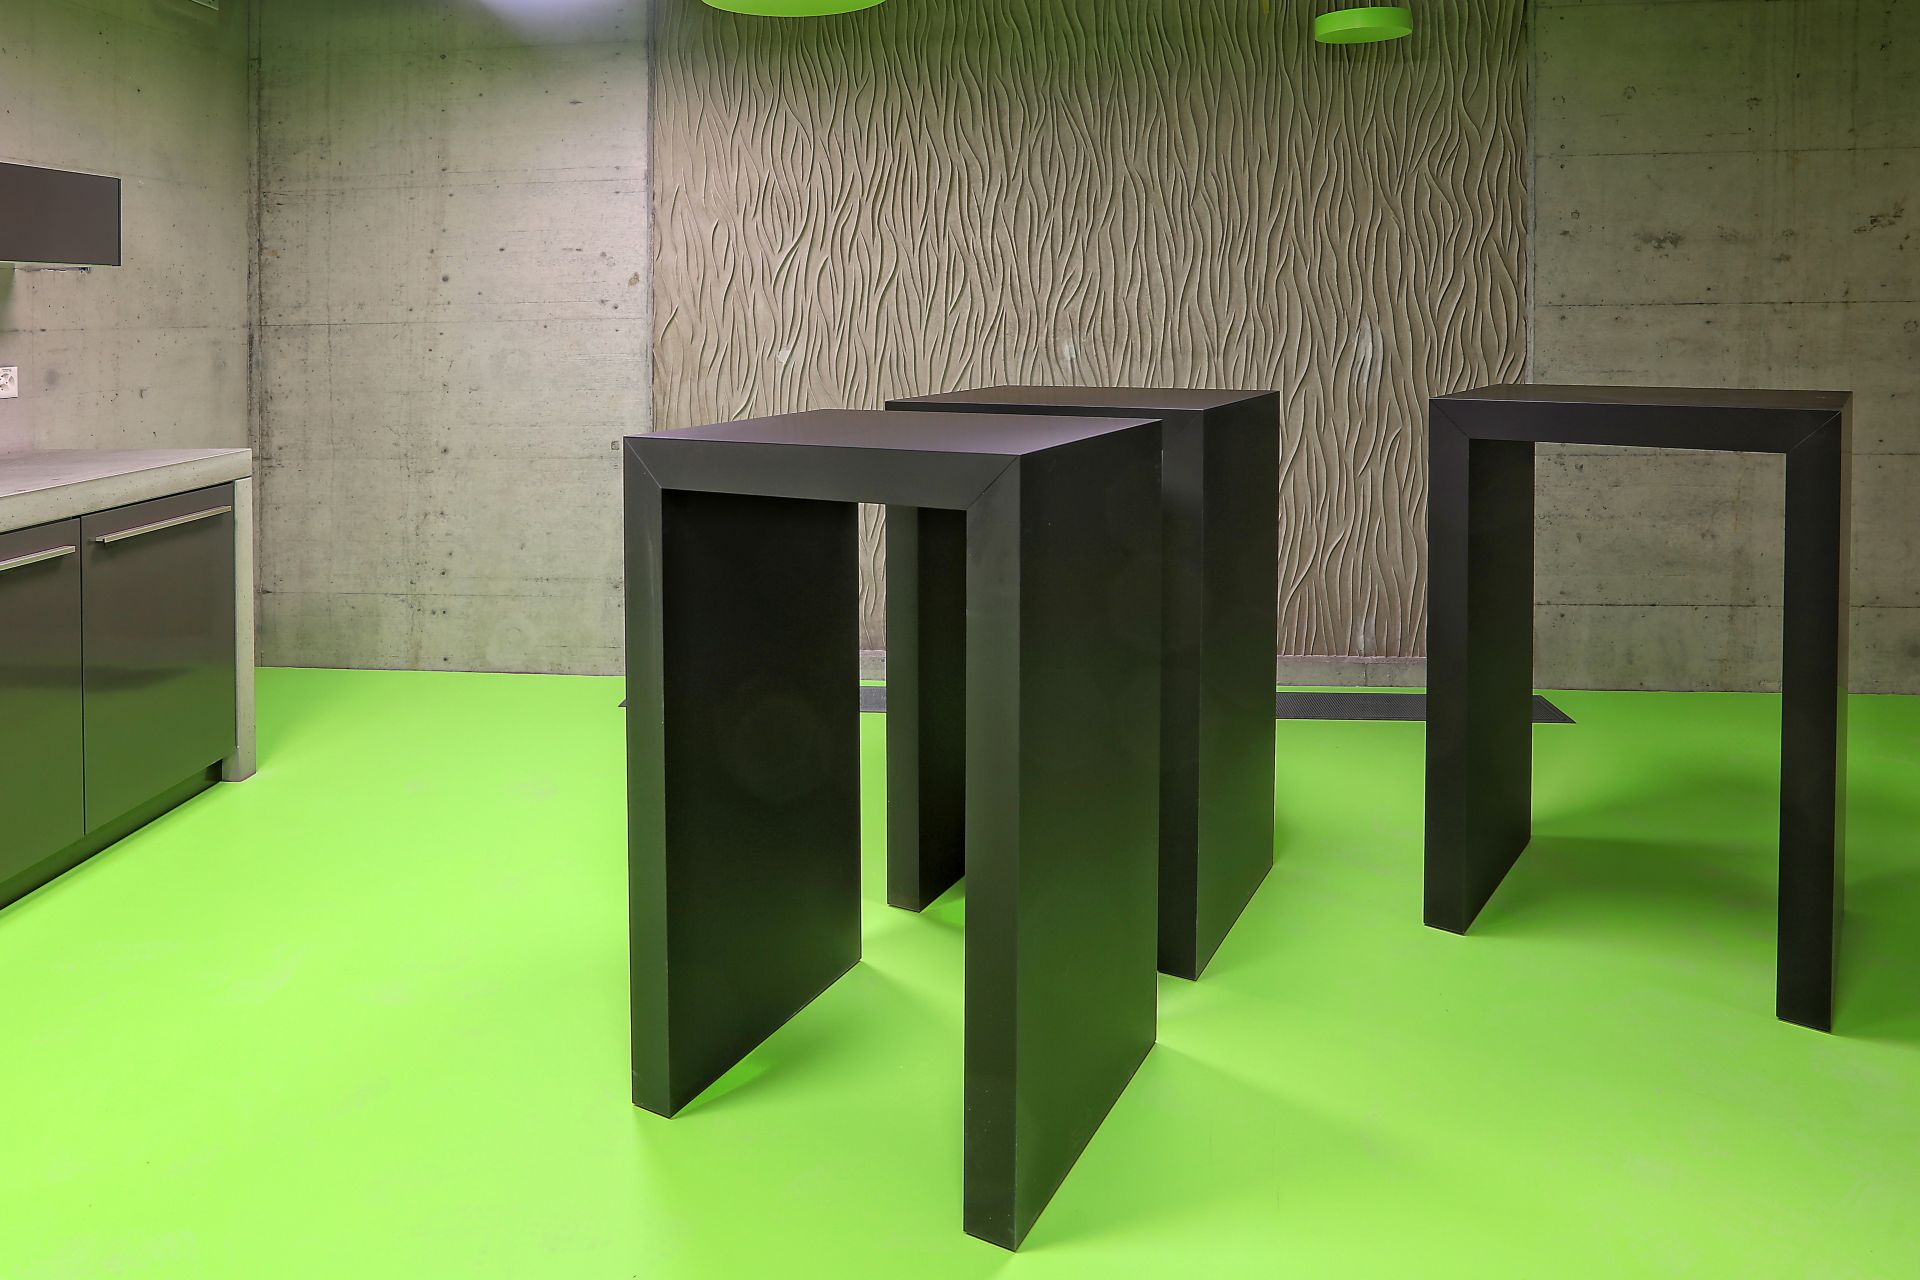 Green floor and architectural concrete wall in a kitchen